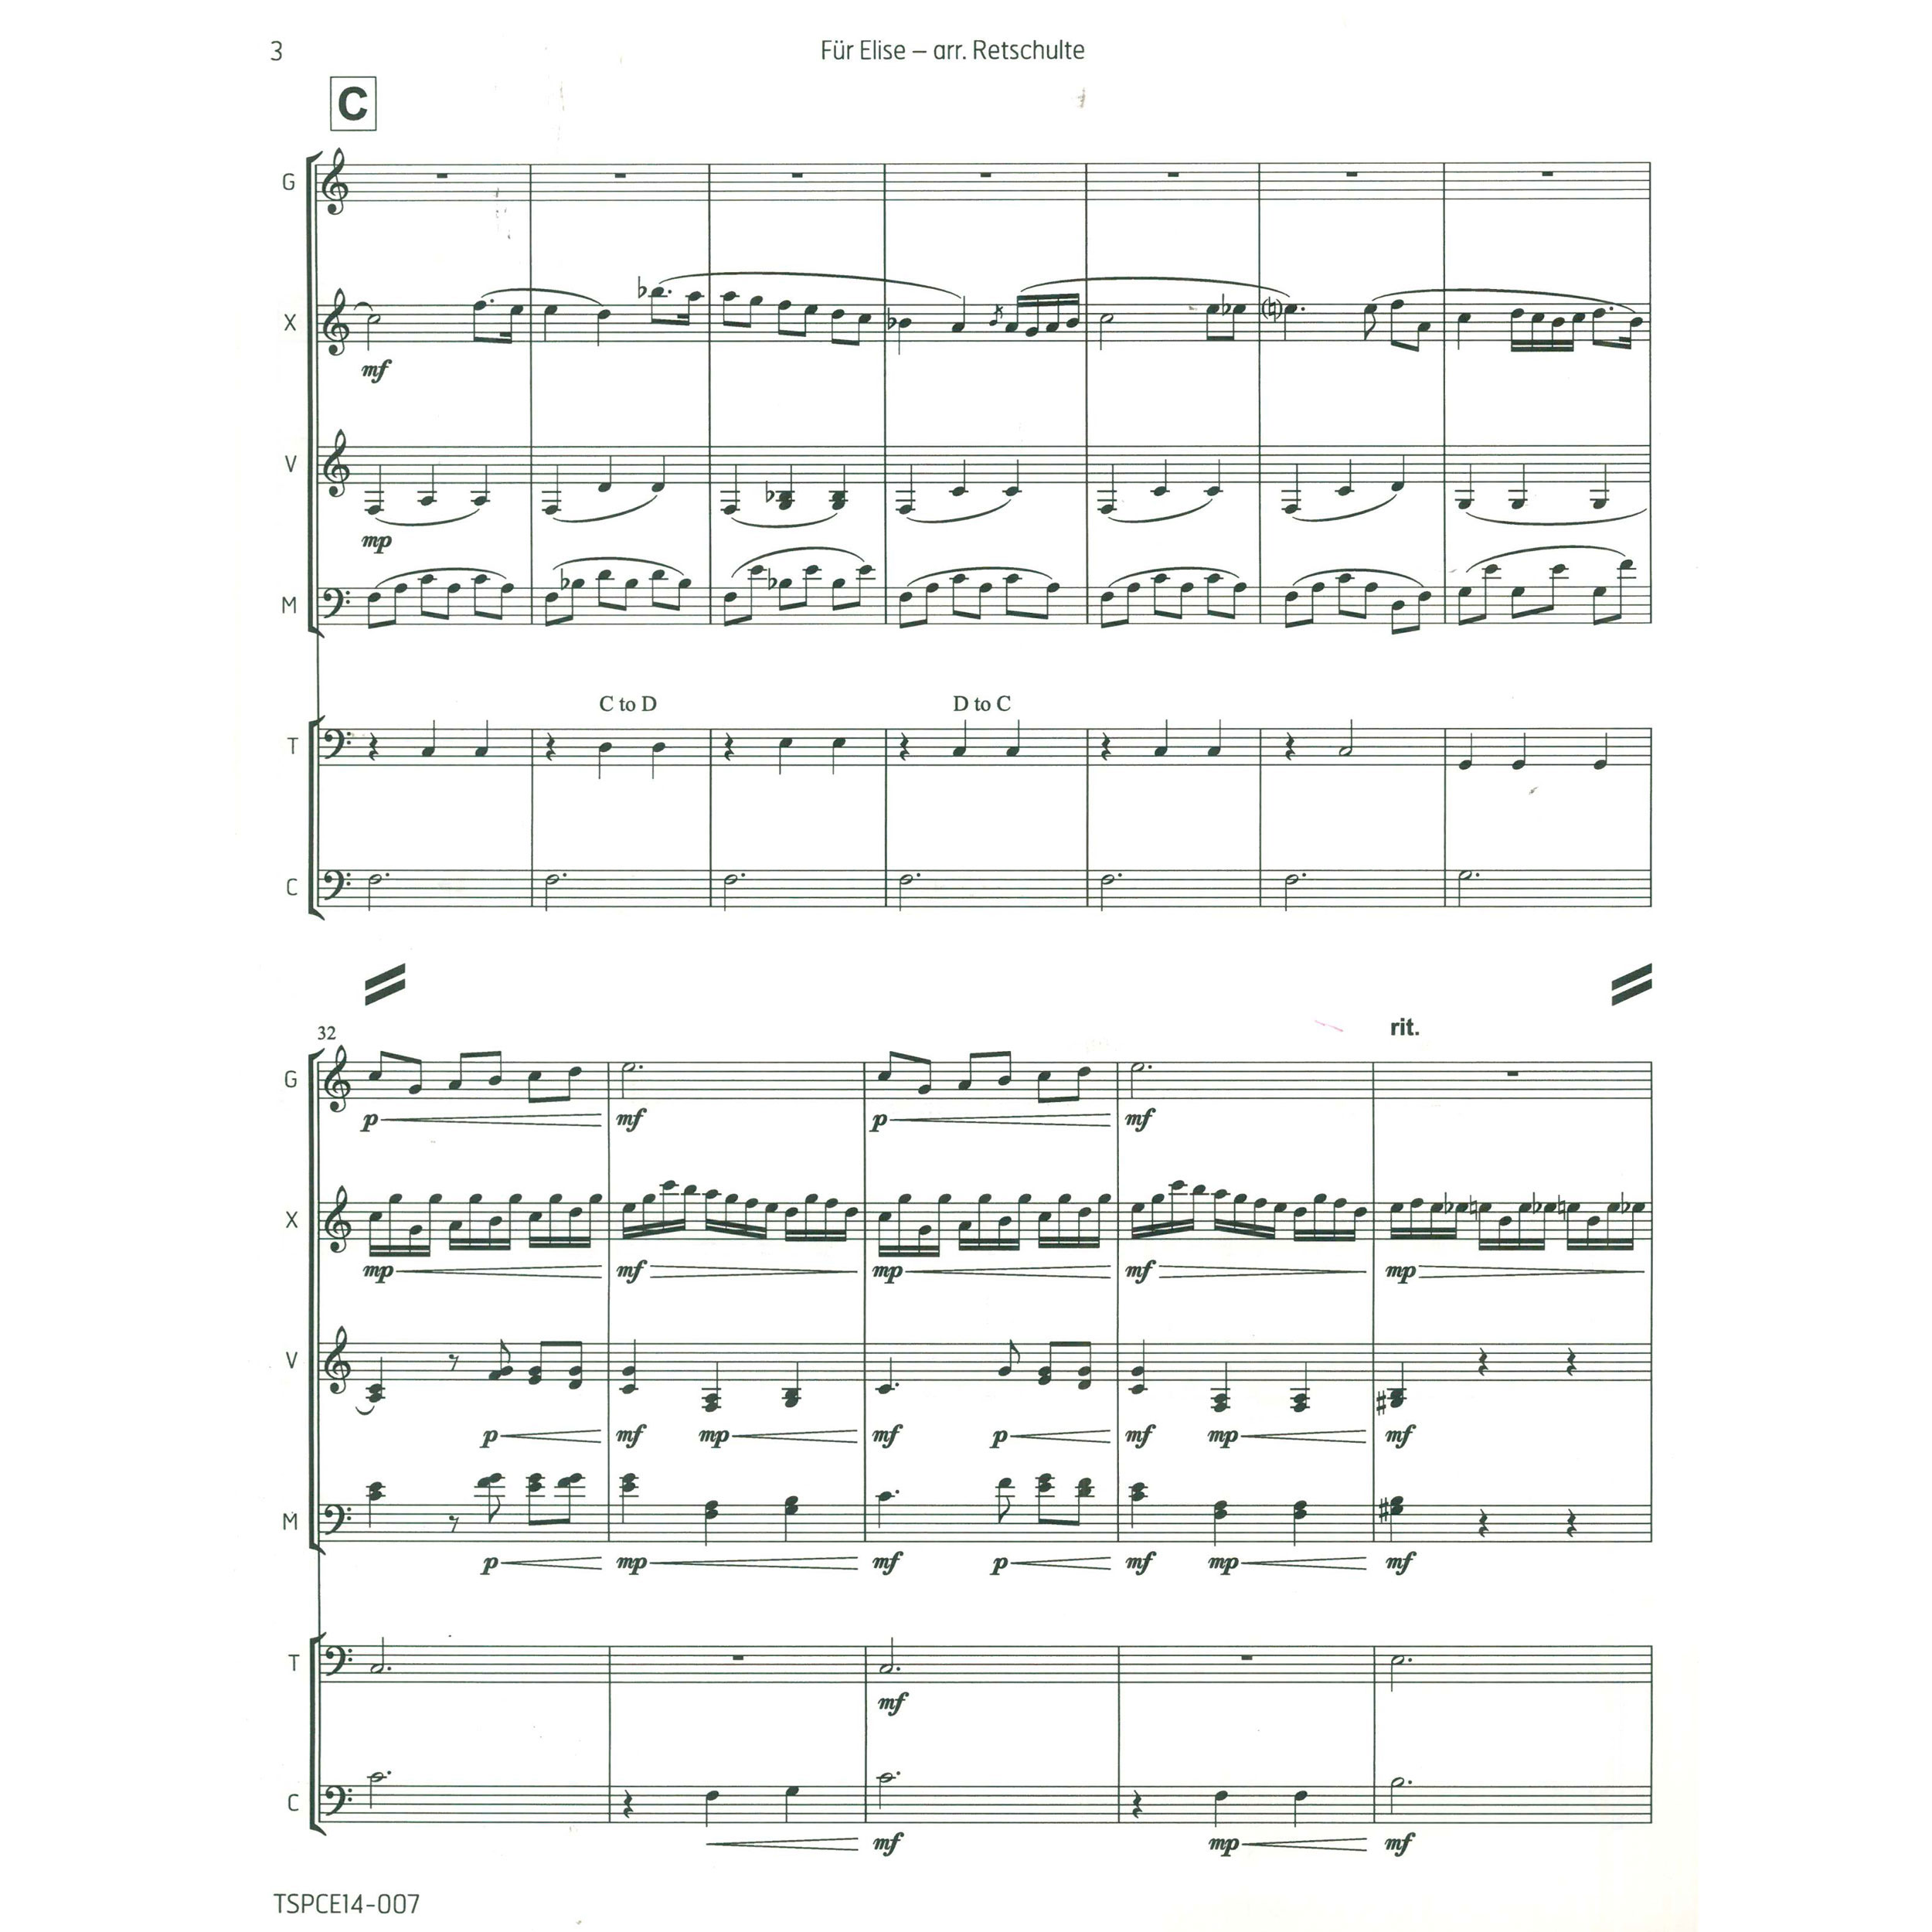 Fur Elise by Beethoven arr  Christopher M  Retschulte